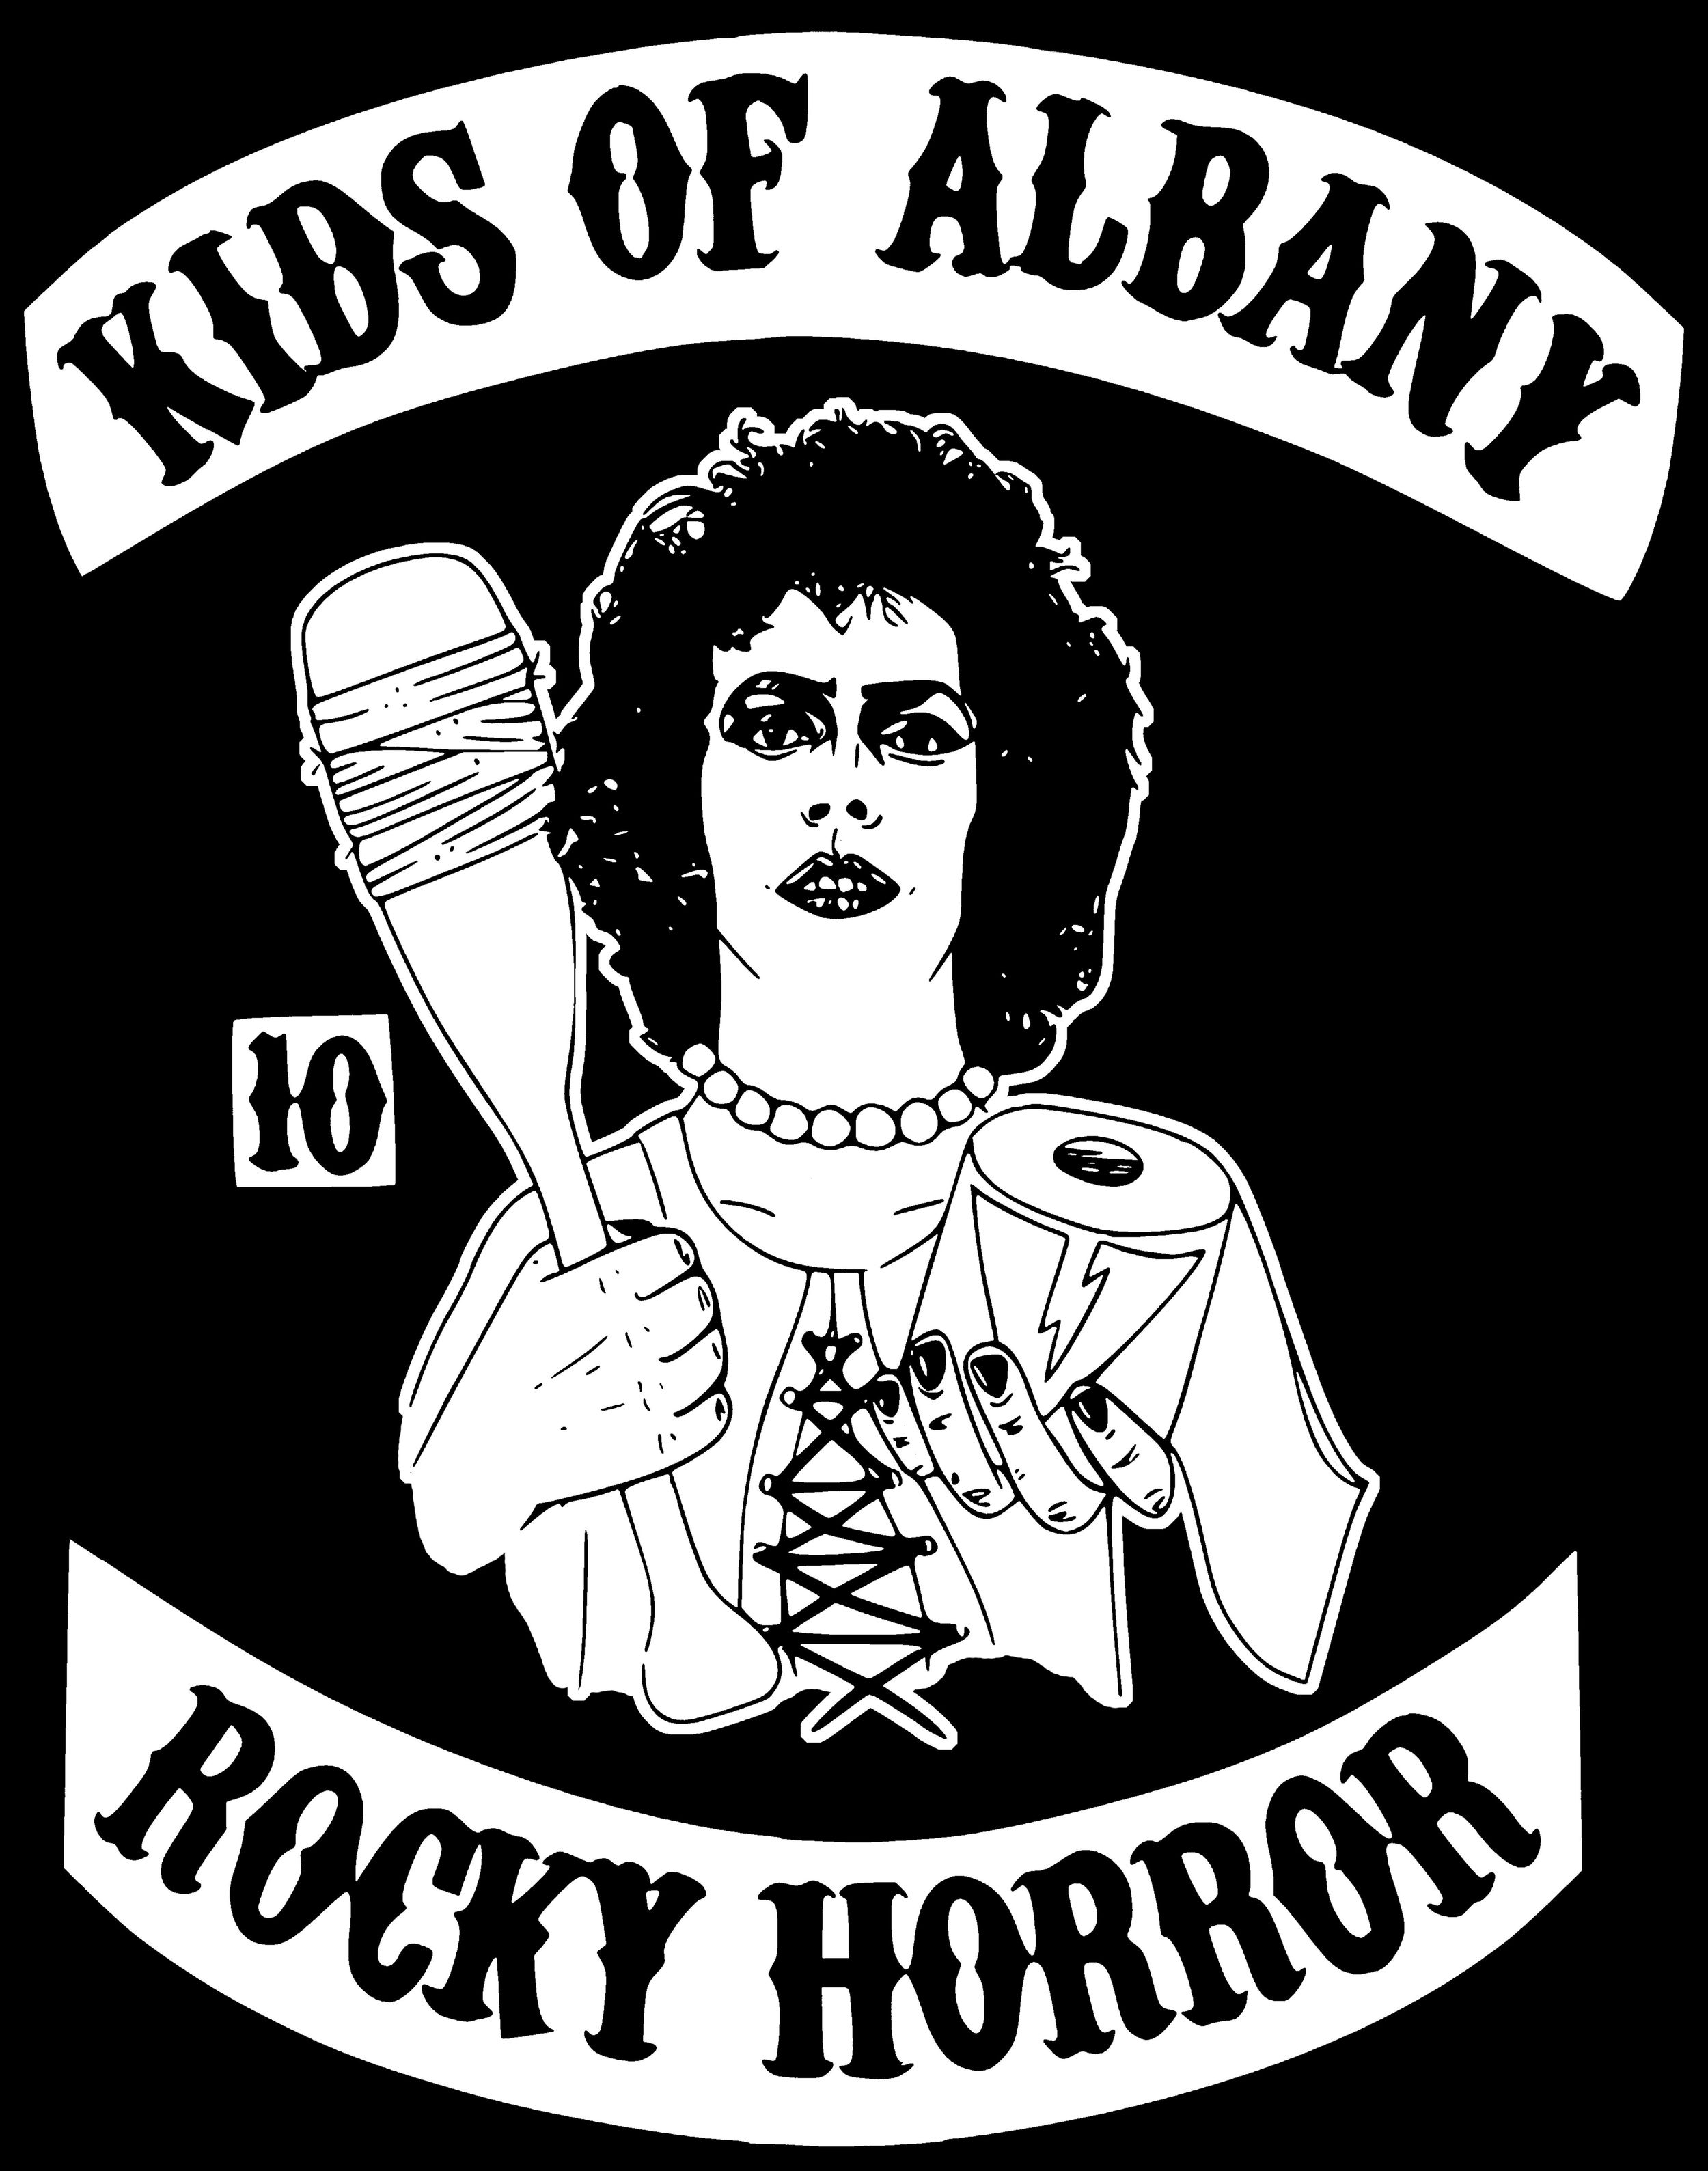 THE KIDS OF ALBANY OFFICIAL LOGO